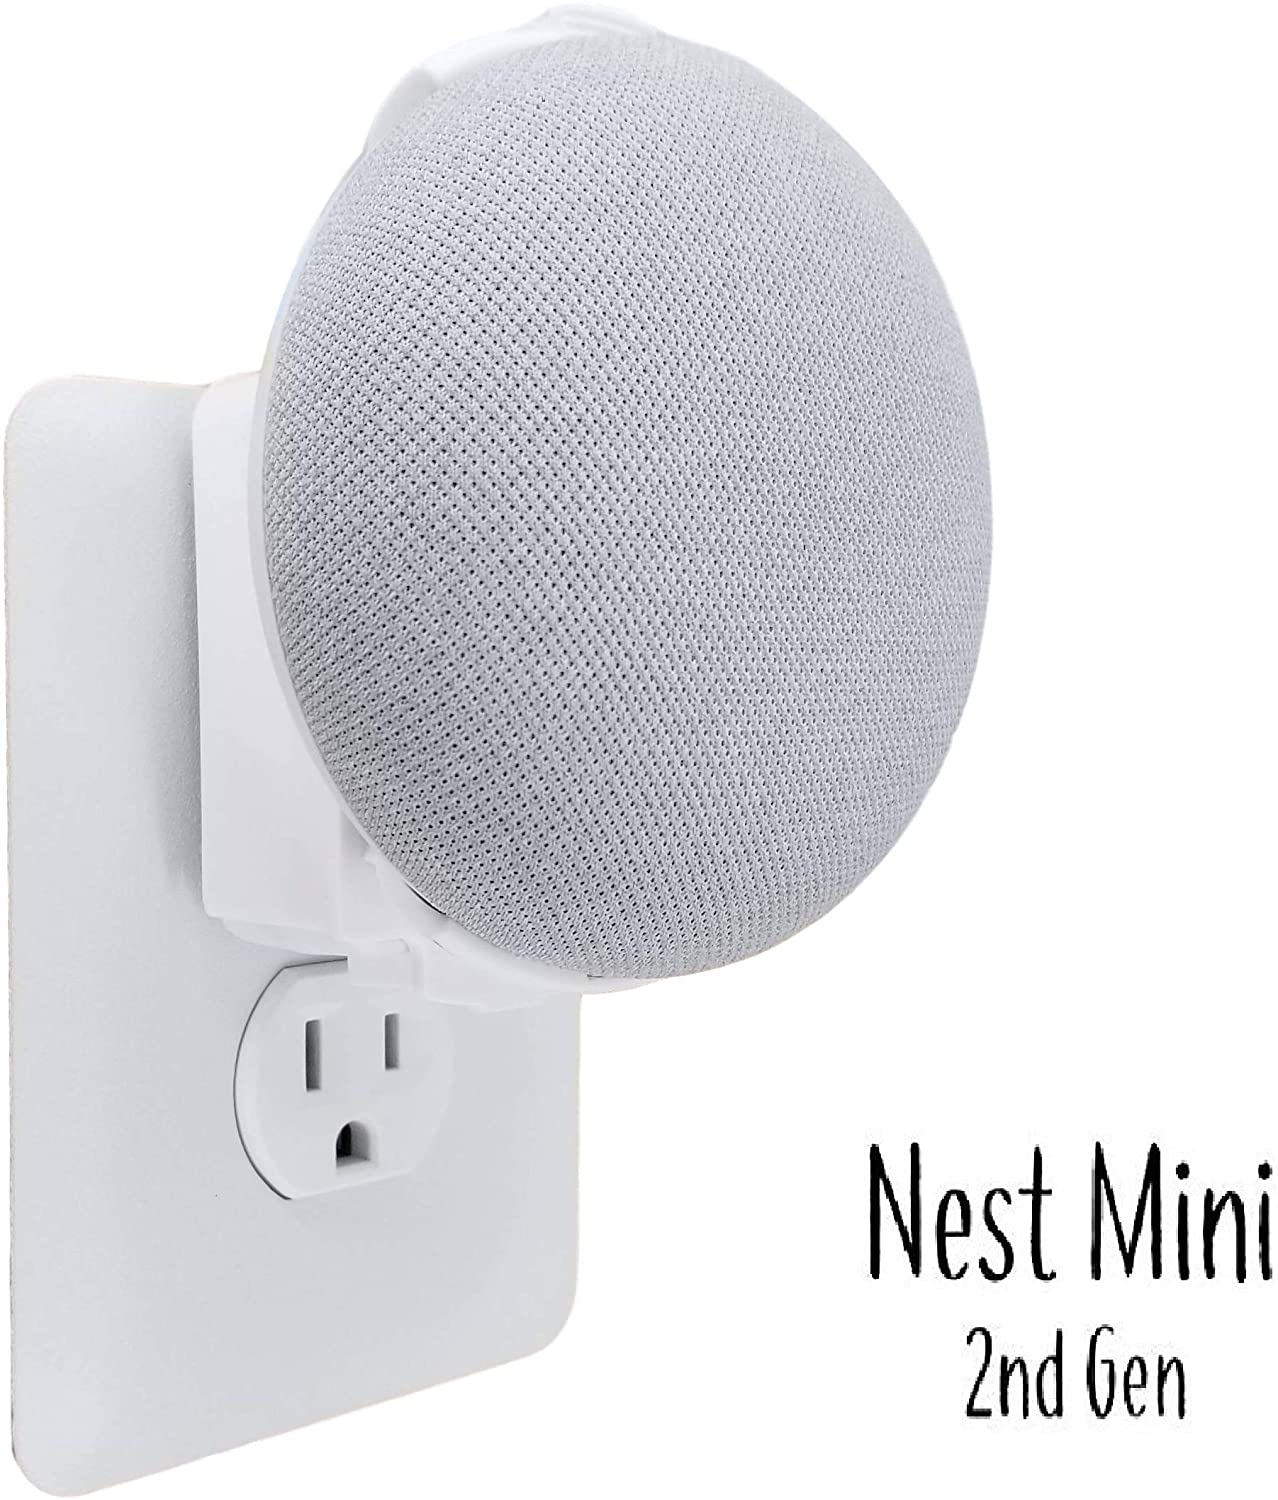 The Nest Mini Backpack 2nd Gen 2019: The Simplest and Cleanest Outlet Wall Mount Hanger Stand for New Google Nest Mini - No Cord Wrapping Required - Designed in USA (White)